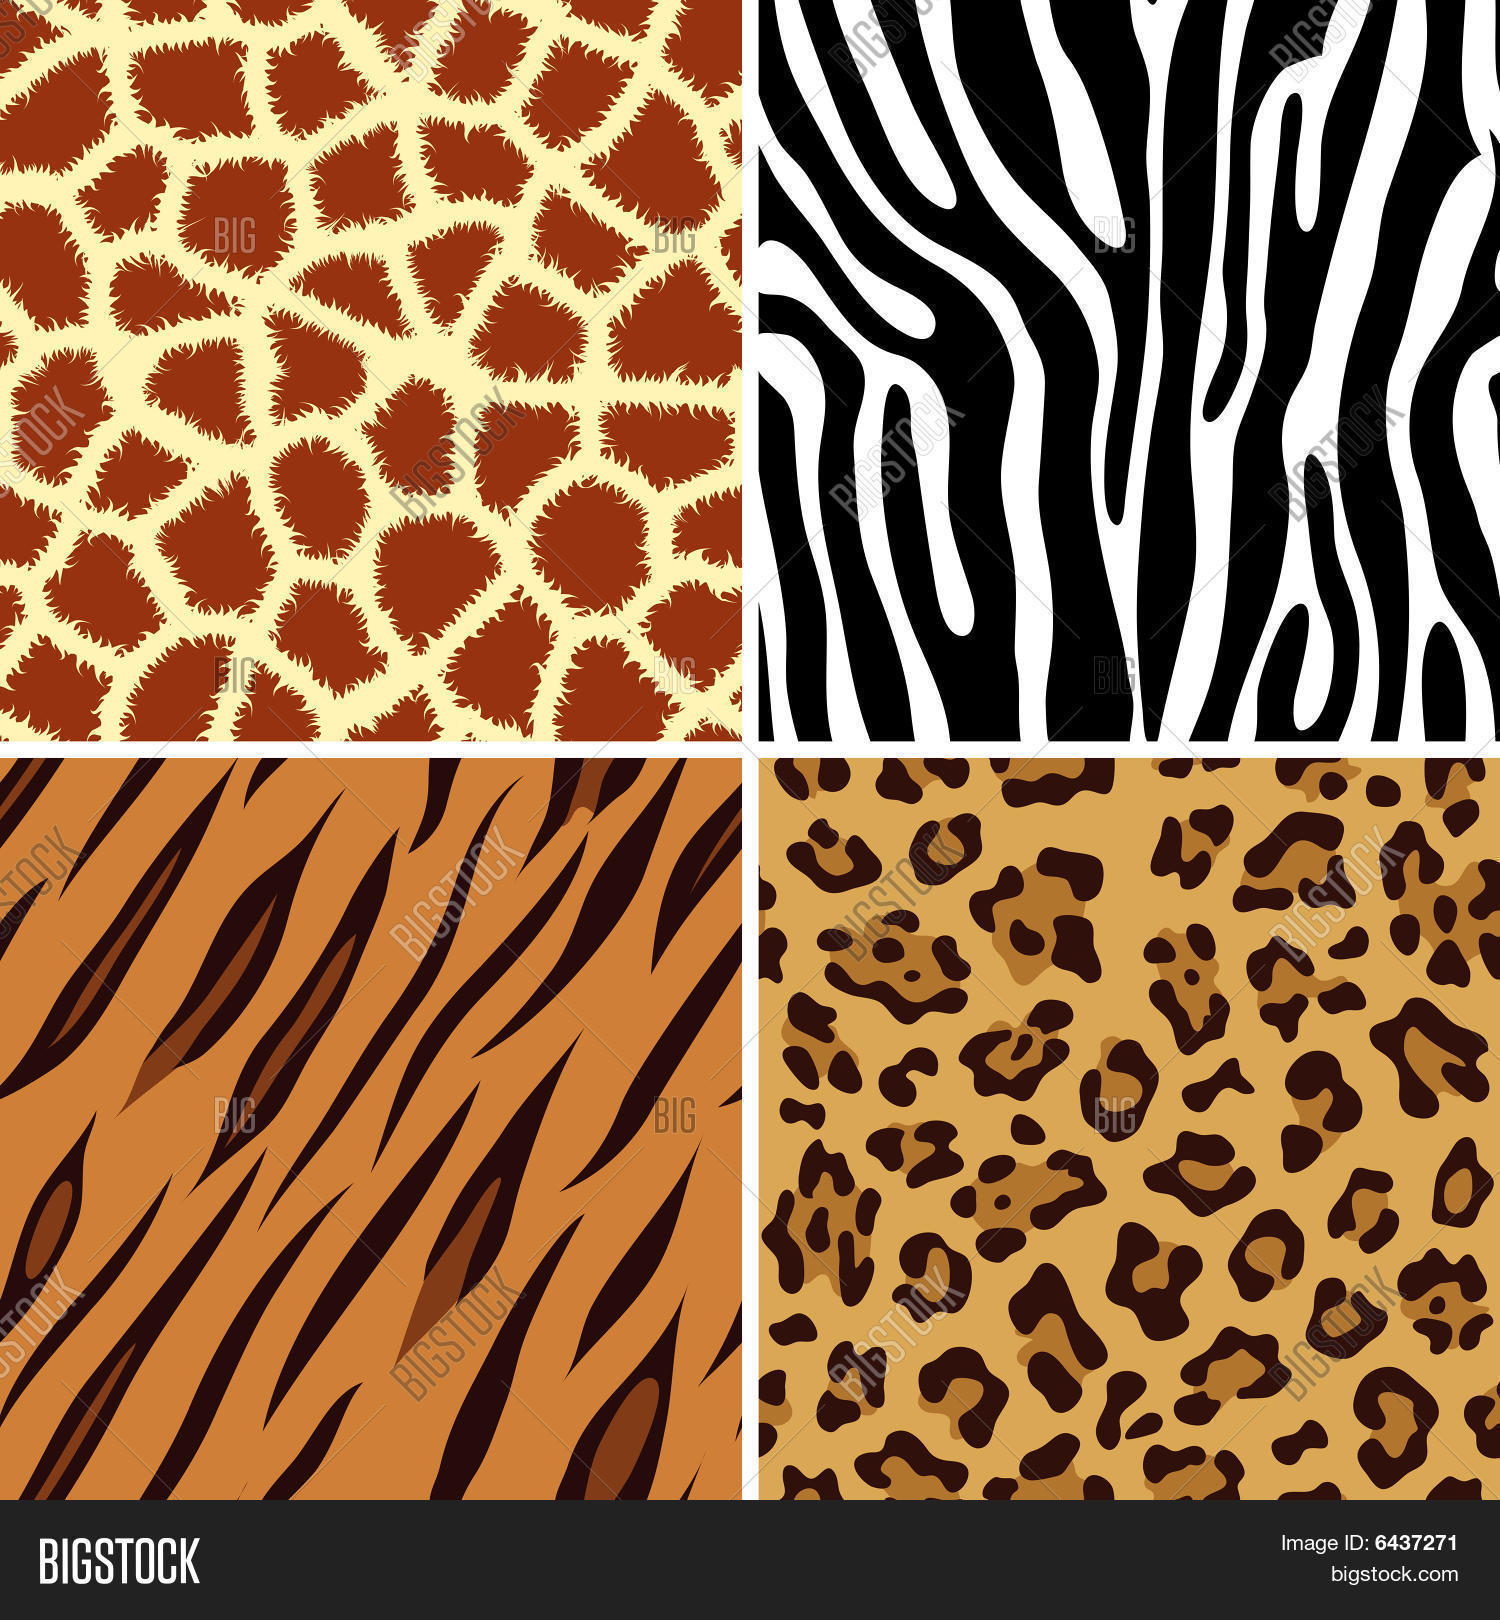 Uncategorized Animal Pictures To Print seamless animal print vector photo bigstock print